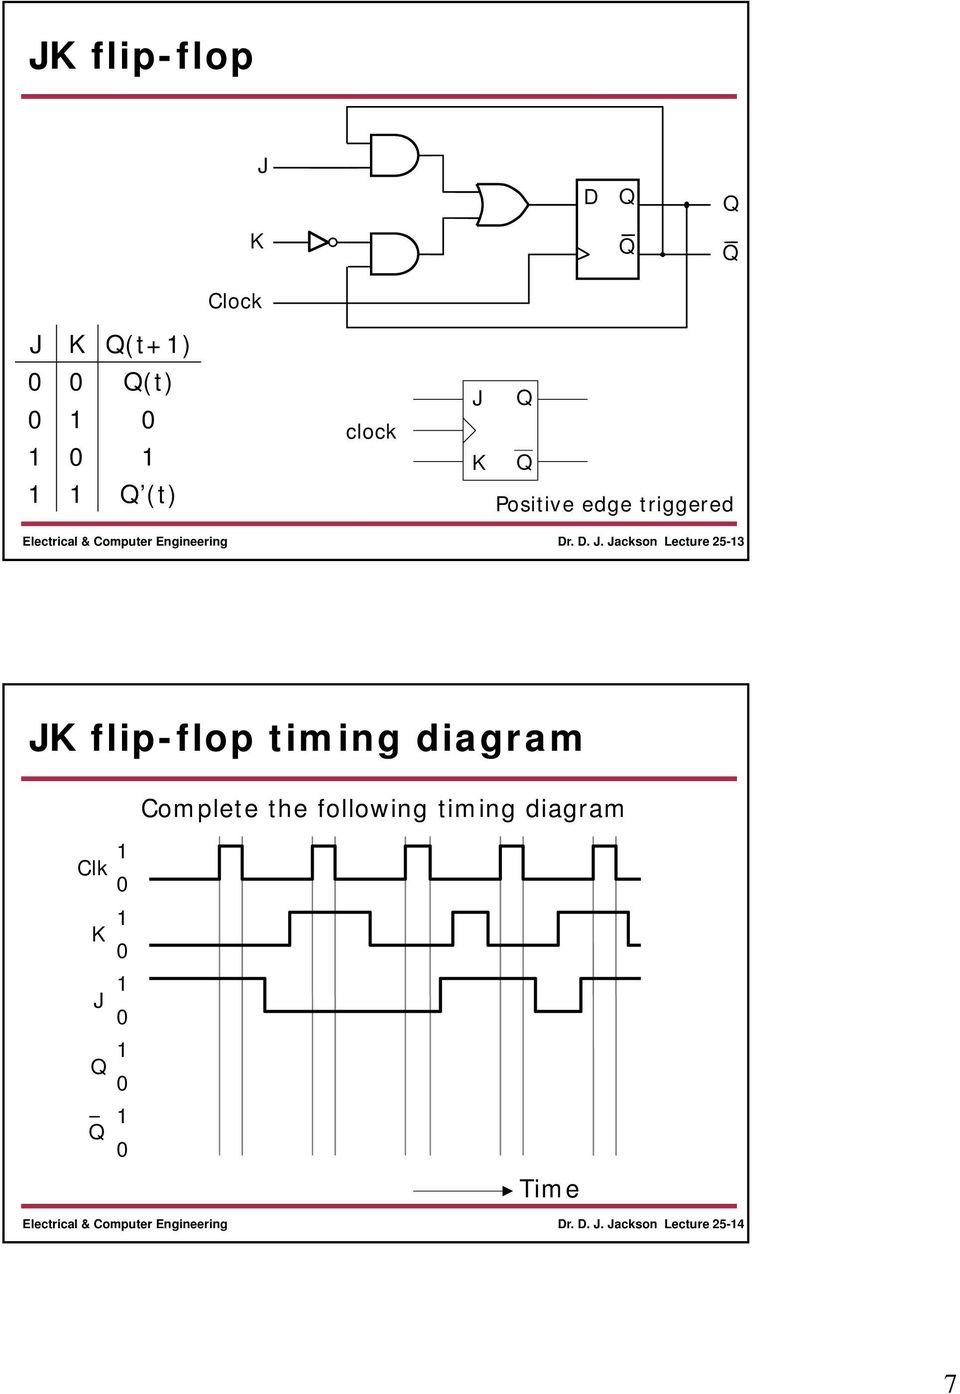 Ece380 Digital Logic Pdf J K Flip Flop Circuit Diagram Jackson Lecture 25 3 Jk Timing